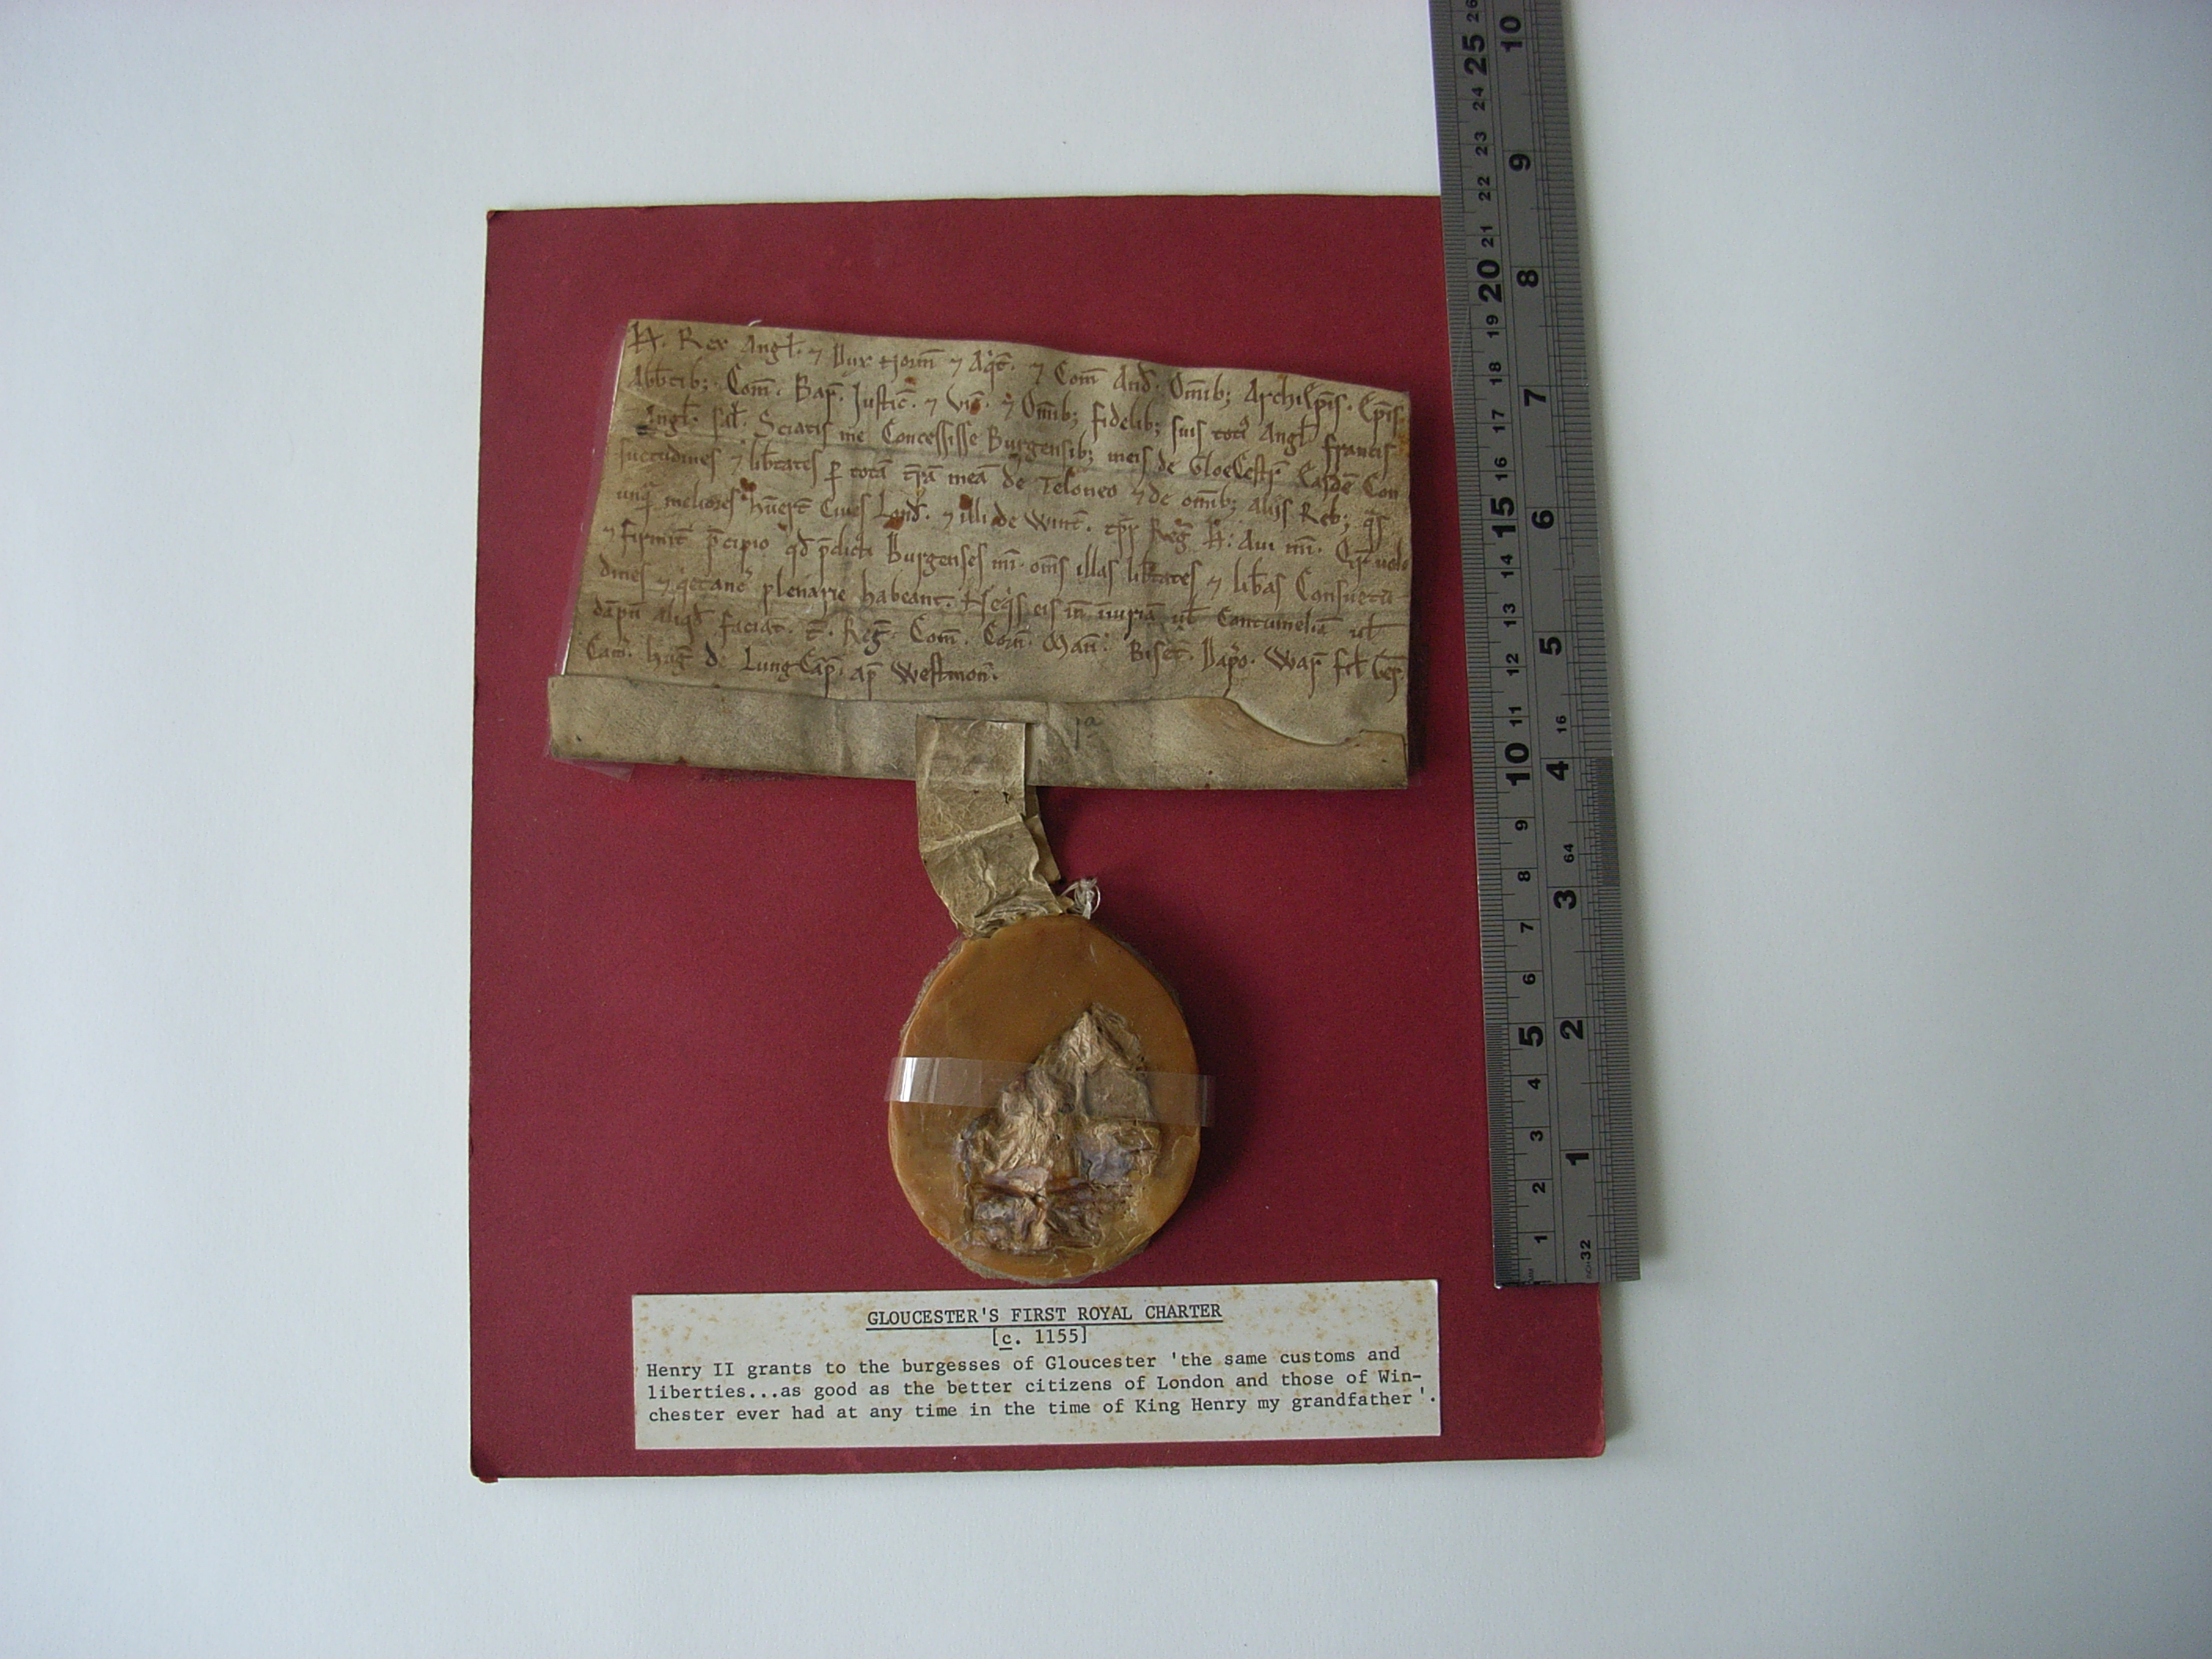 Image of Gloucester's first royal charter, from the time of Henry II (c.1155)